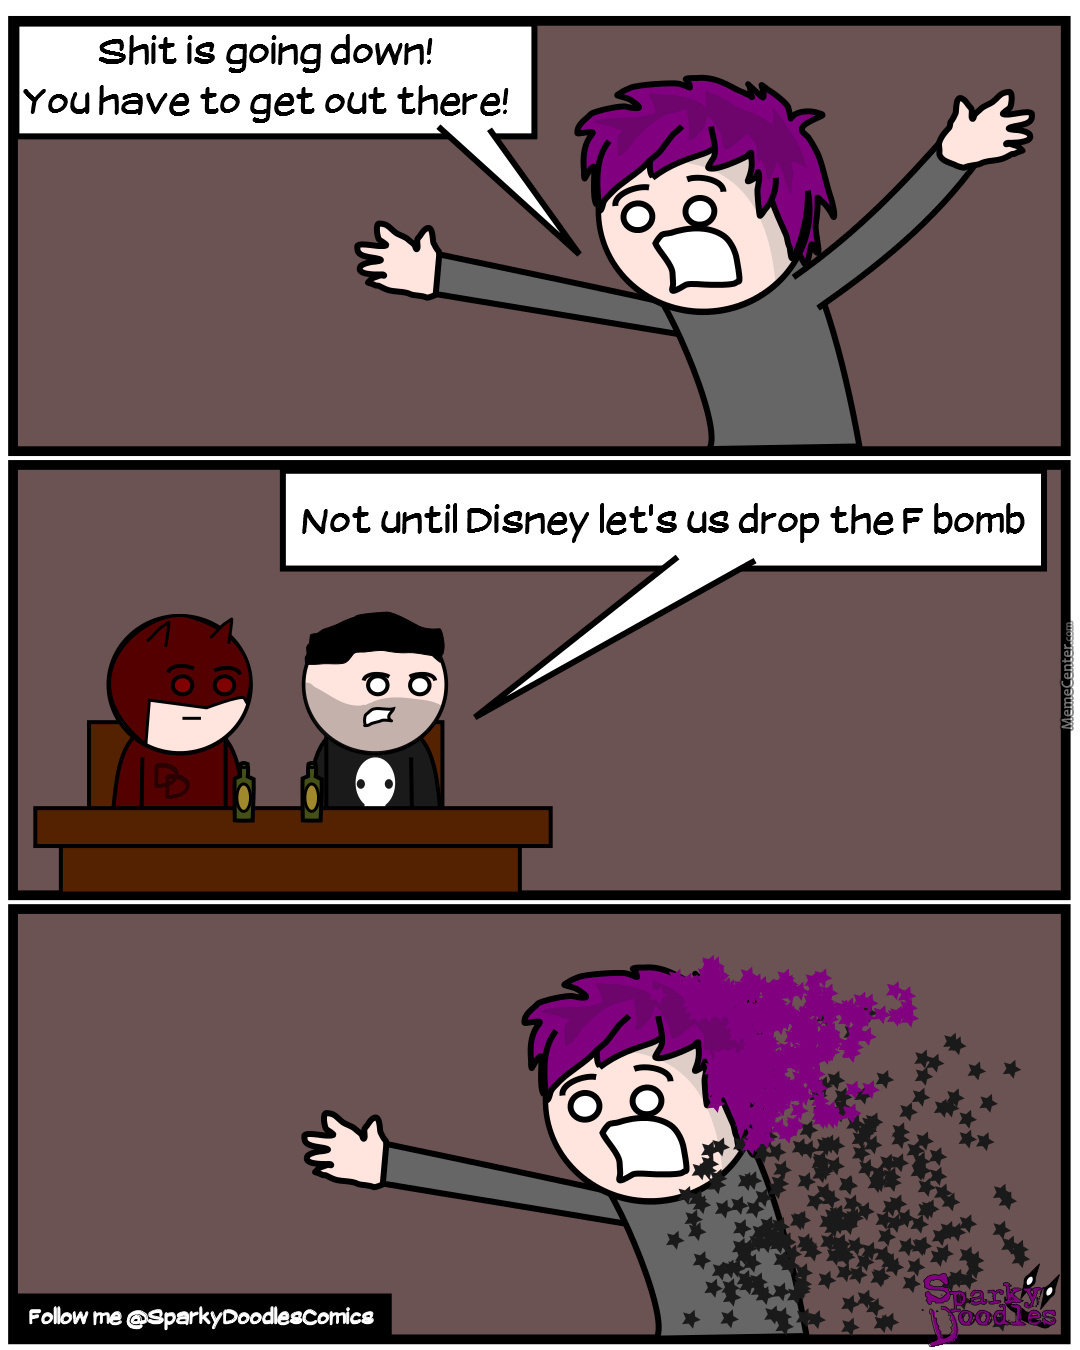 Sparky Doodles: Missing Something, Version Two